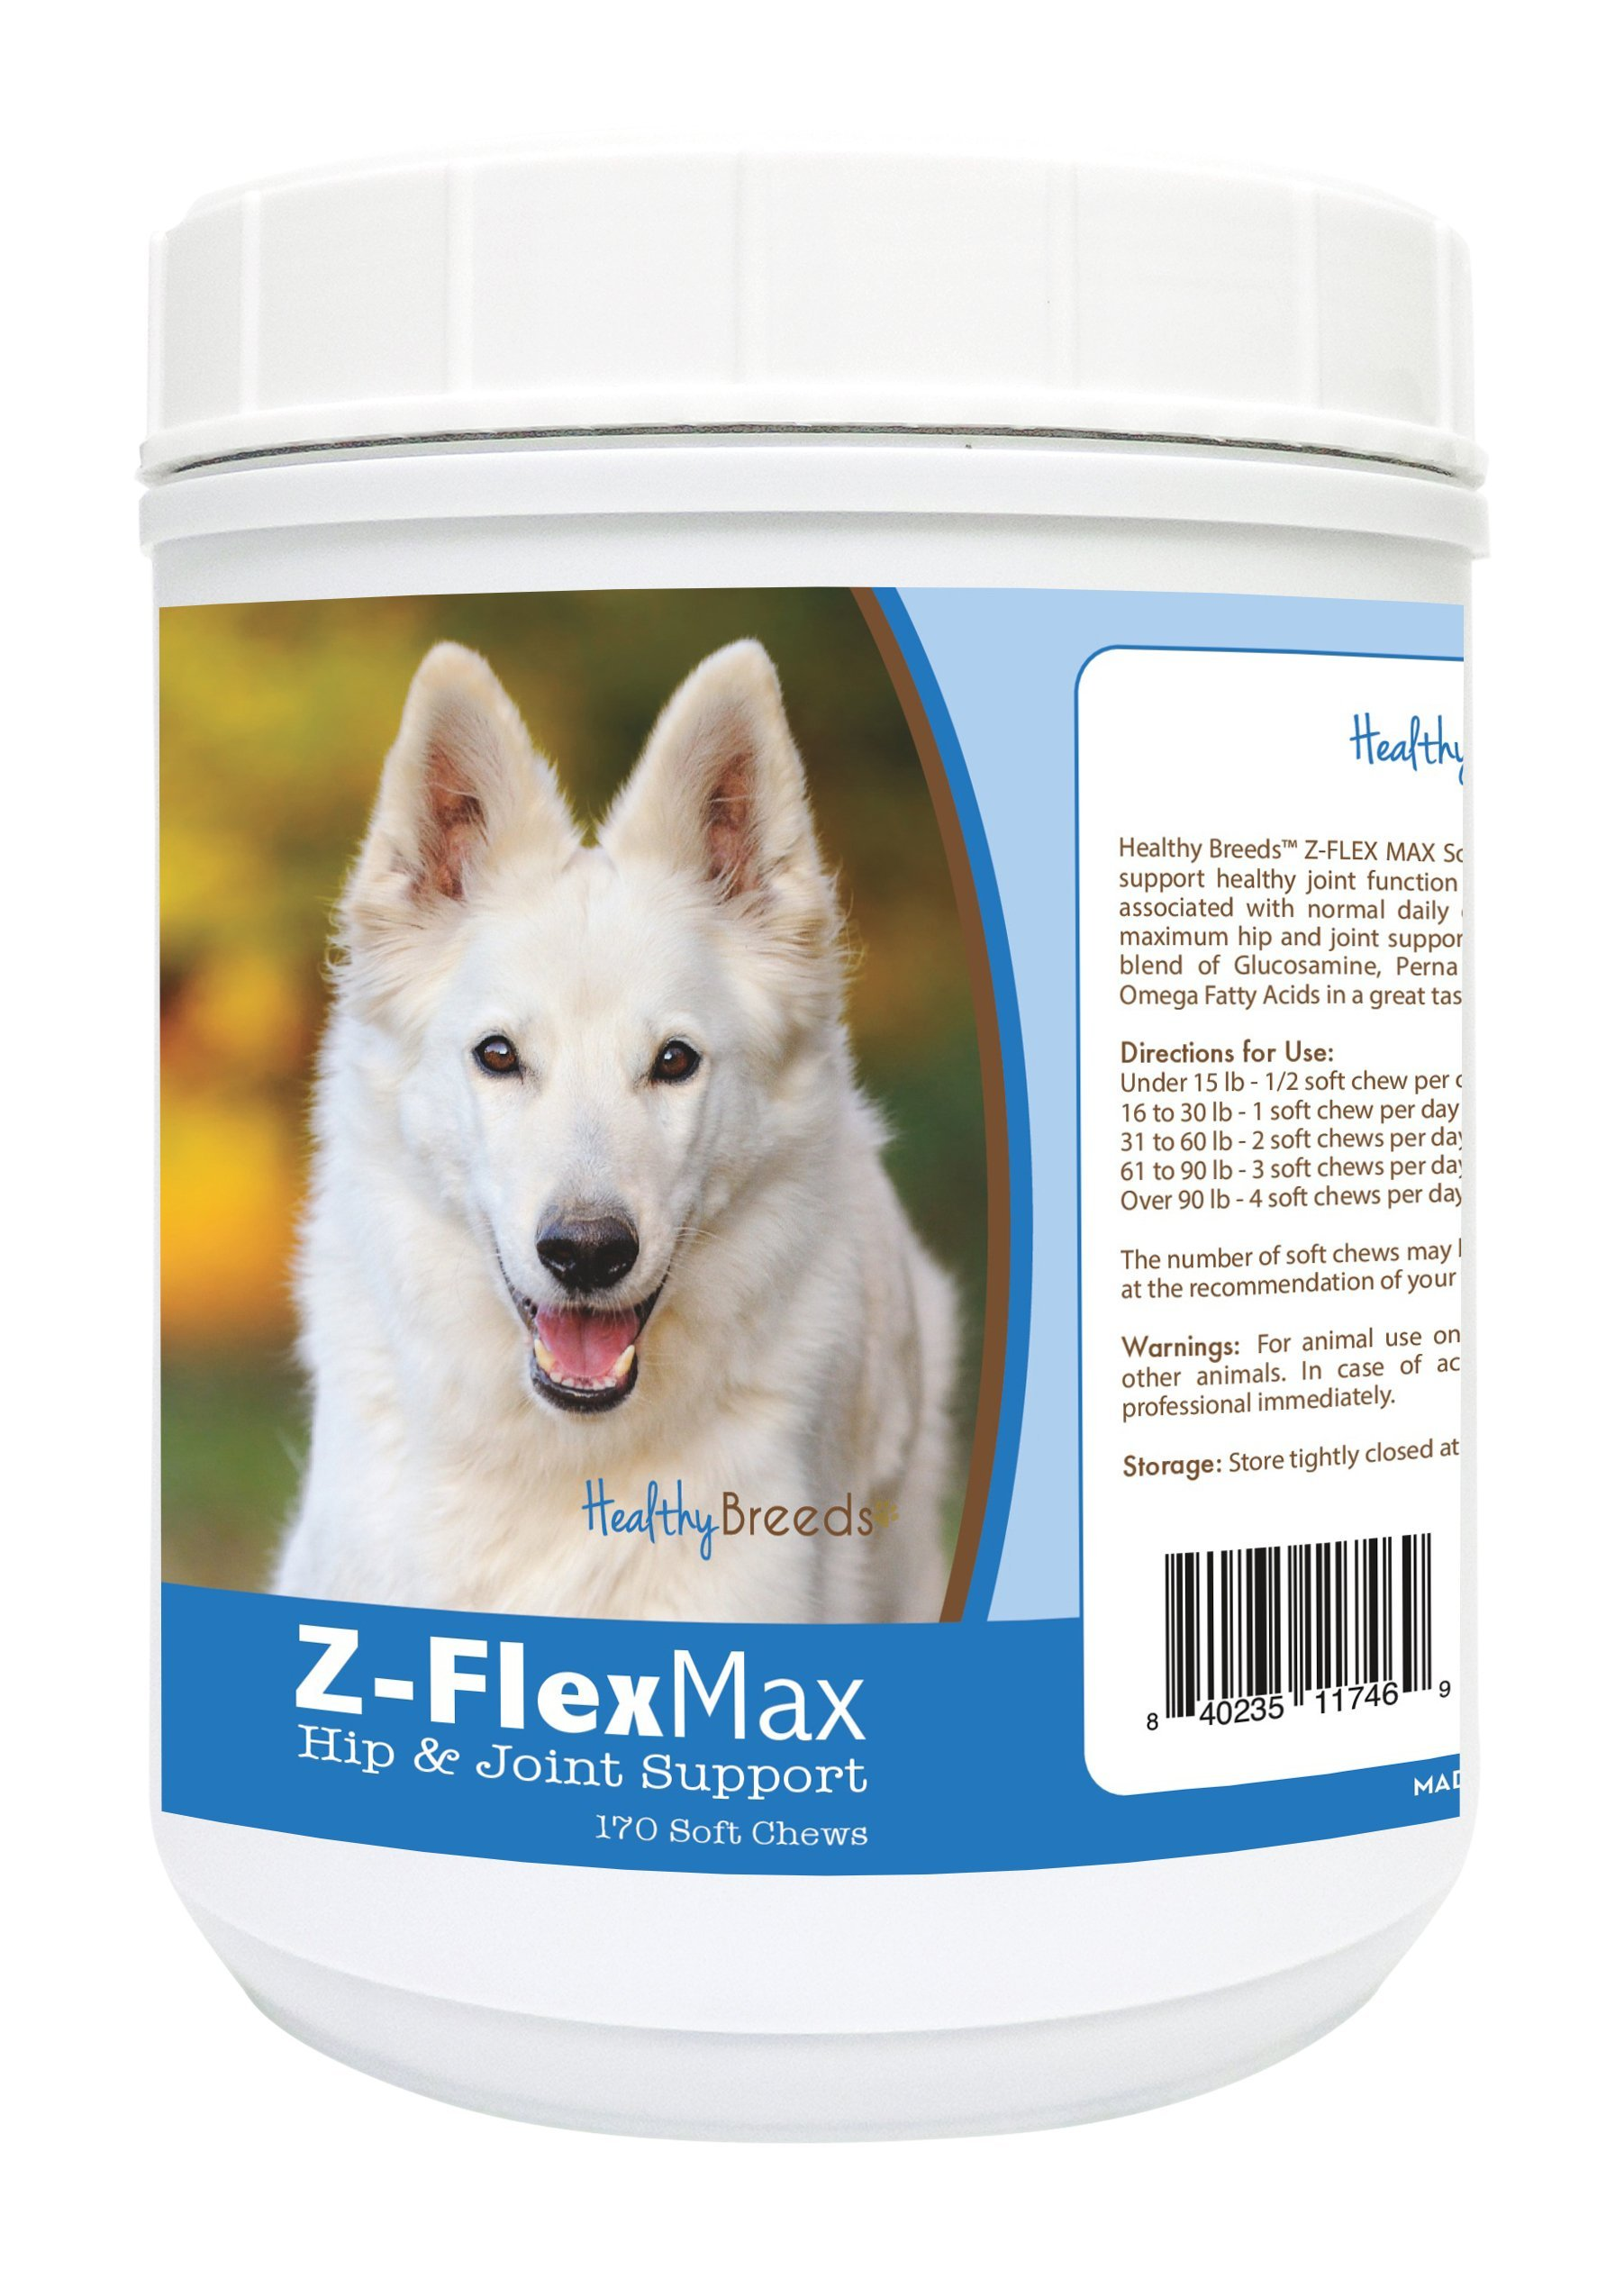 Healthy Breeds Z Flex Dog Hip And Joint Support Soft Chews For German Shepherd - Over 80 Breeds - For Small Medium & Large Pets - Max & Minis 50/60/170 Count by Healthy Breeds